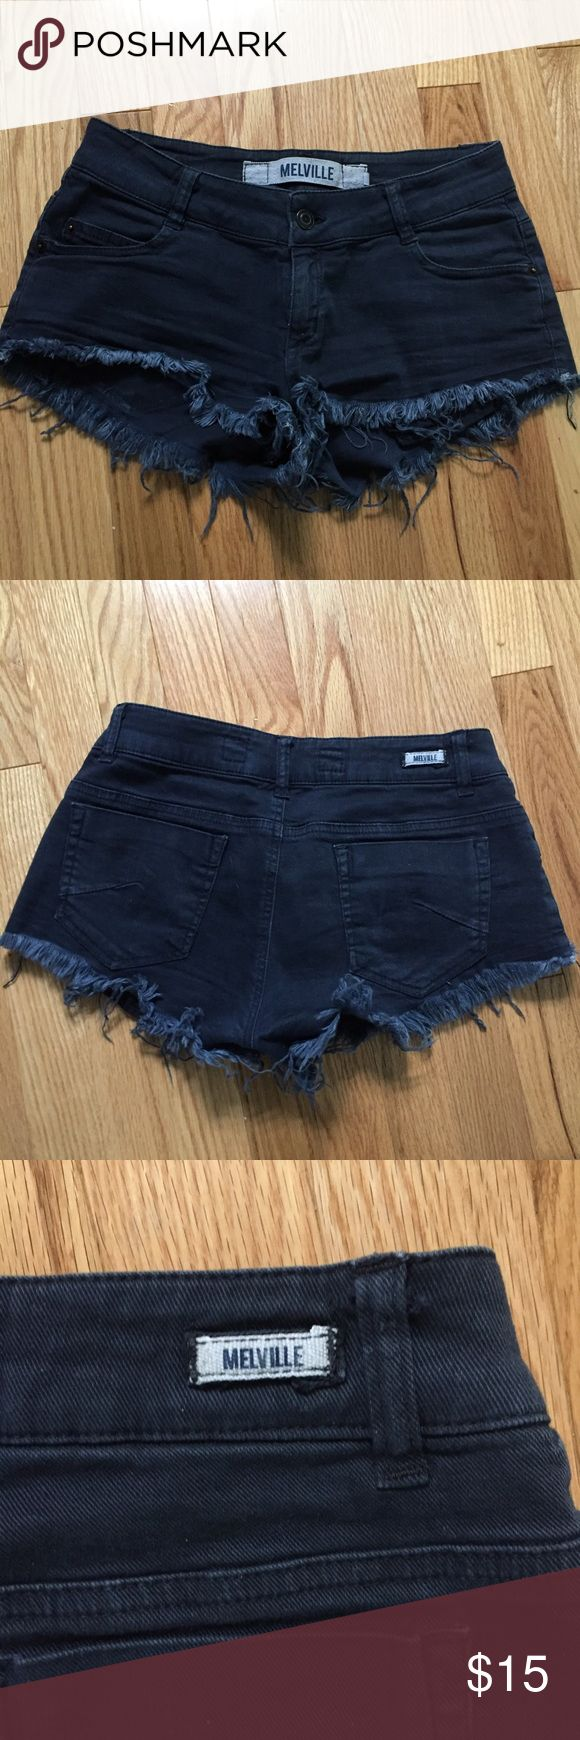 Brandy Melville Navy Shorts Bought these at the Florence, Italy BM. I love these but sadly they no longer fit me. Melville size 38, fits like a small. Brandy Melville Shorts Jean Shorts